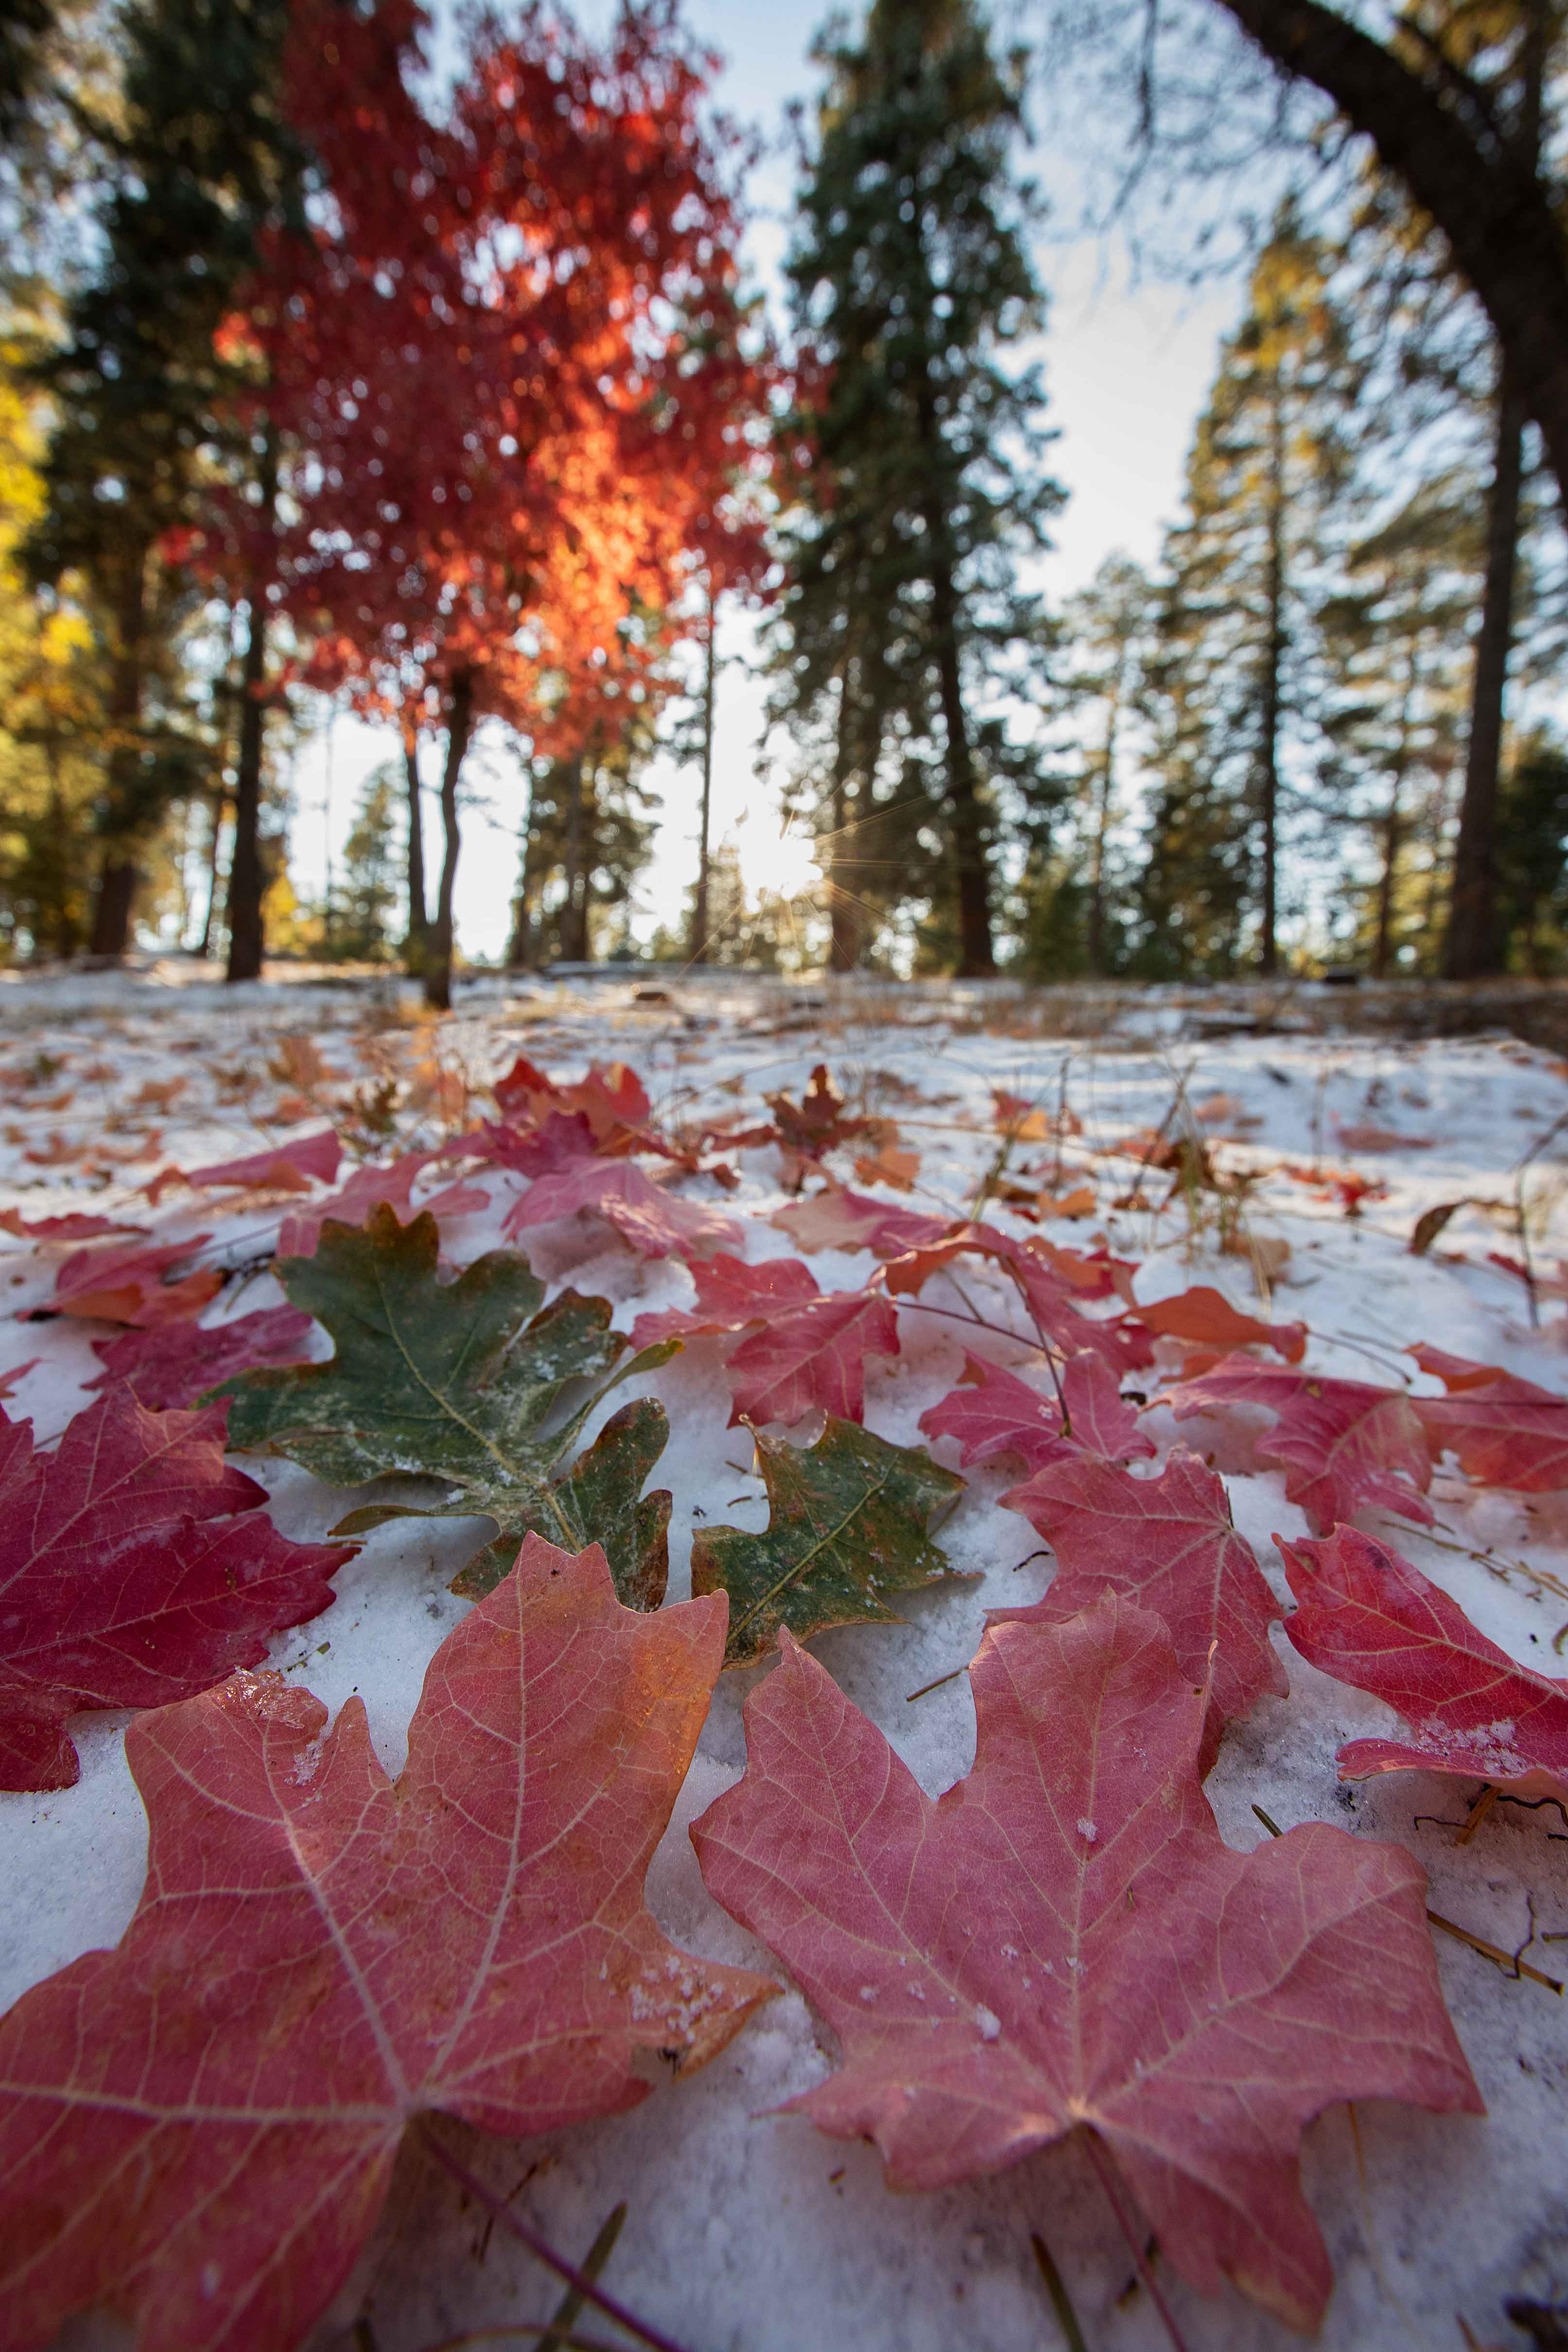 As fall turns to winter, Maple leaves rest upon the first snow of the year on Arizona's Mogollon Rim